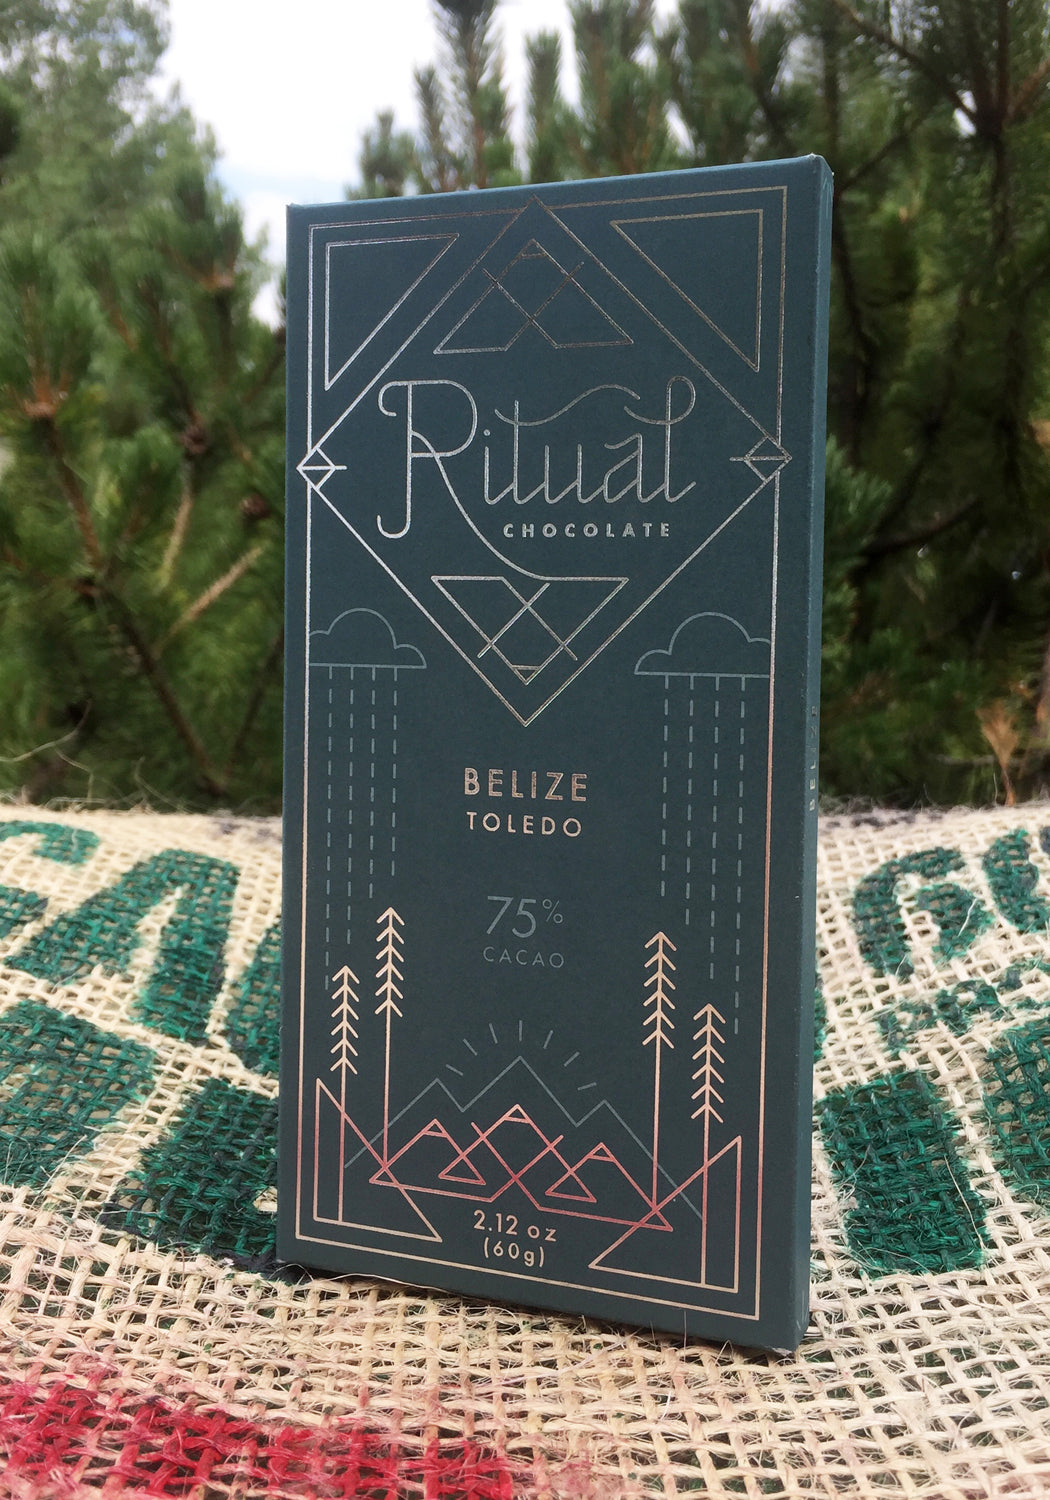 Ritual Chocolate Belize Toledo 75% Bar